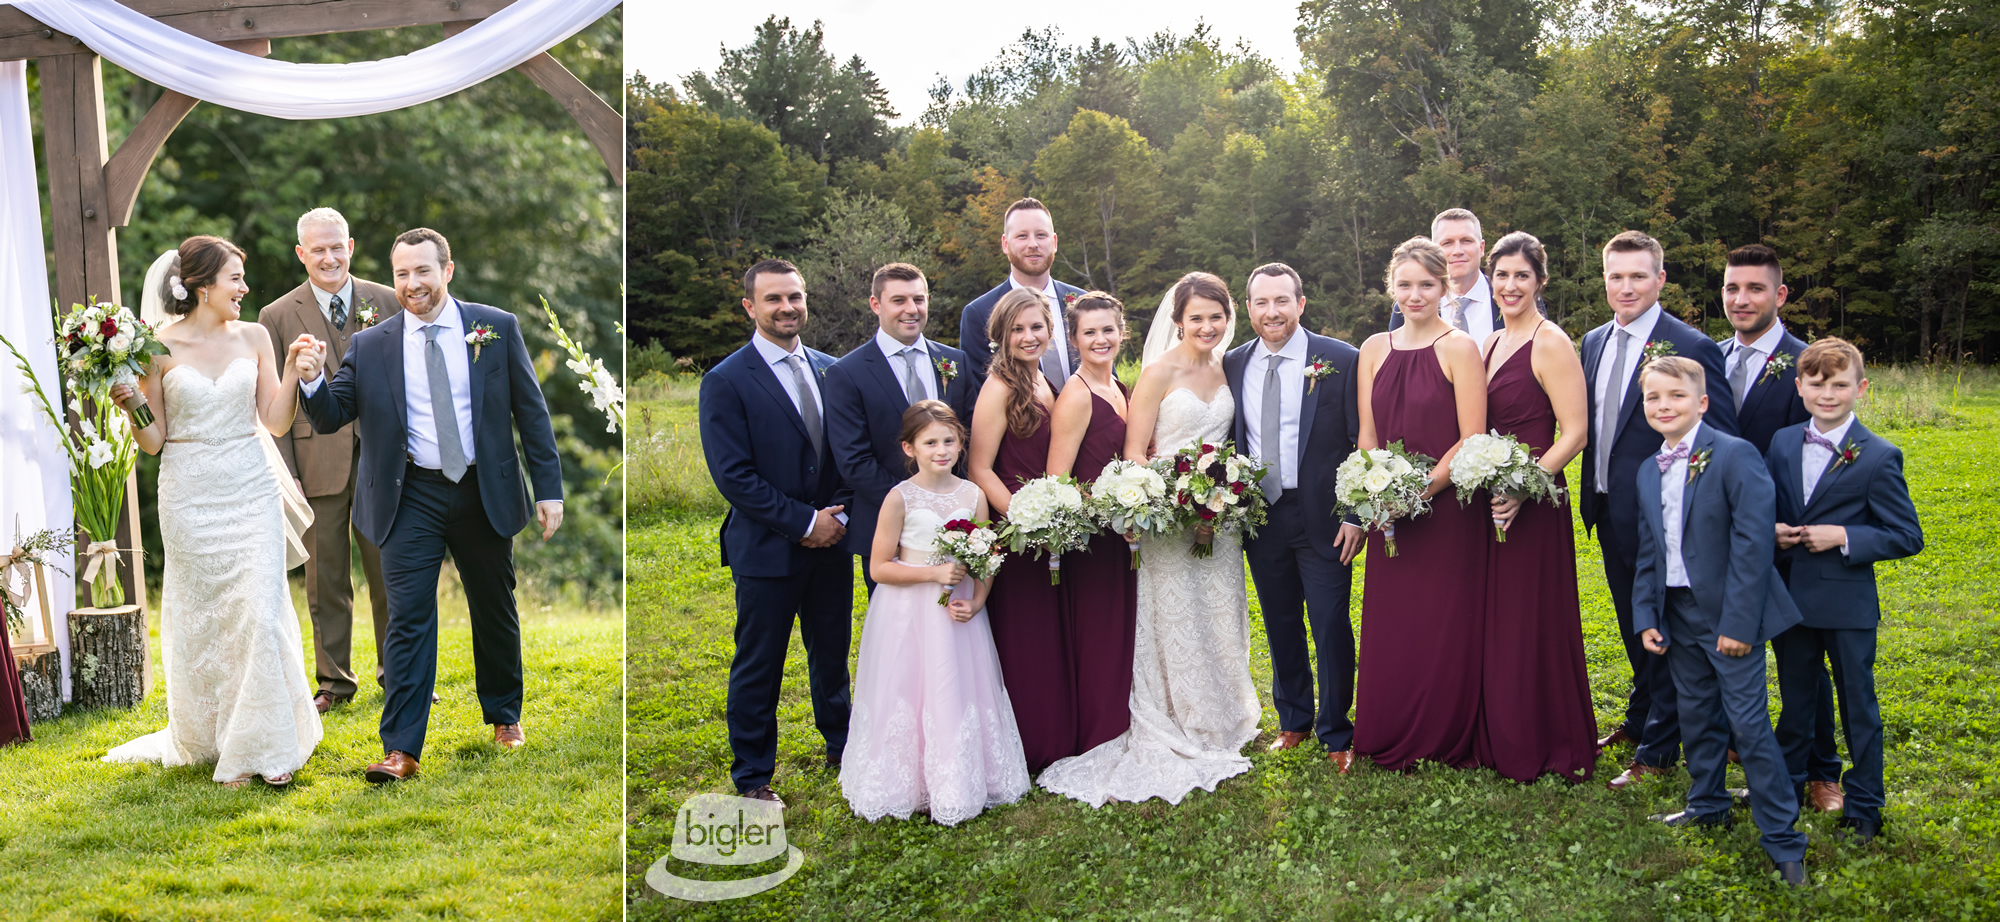 20180914_-_18_-_Jess_and_Aram_Greywacke_Meadows_Wedding